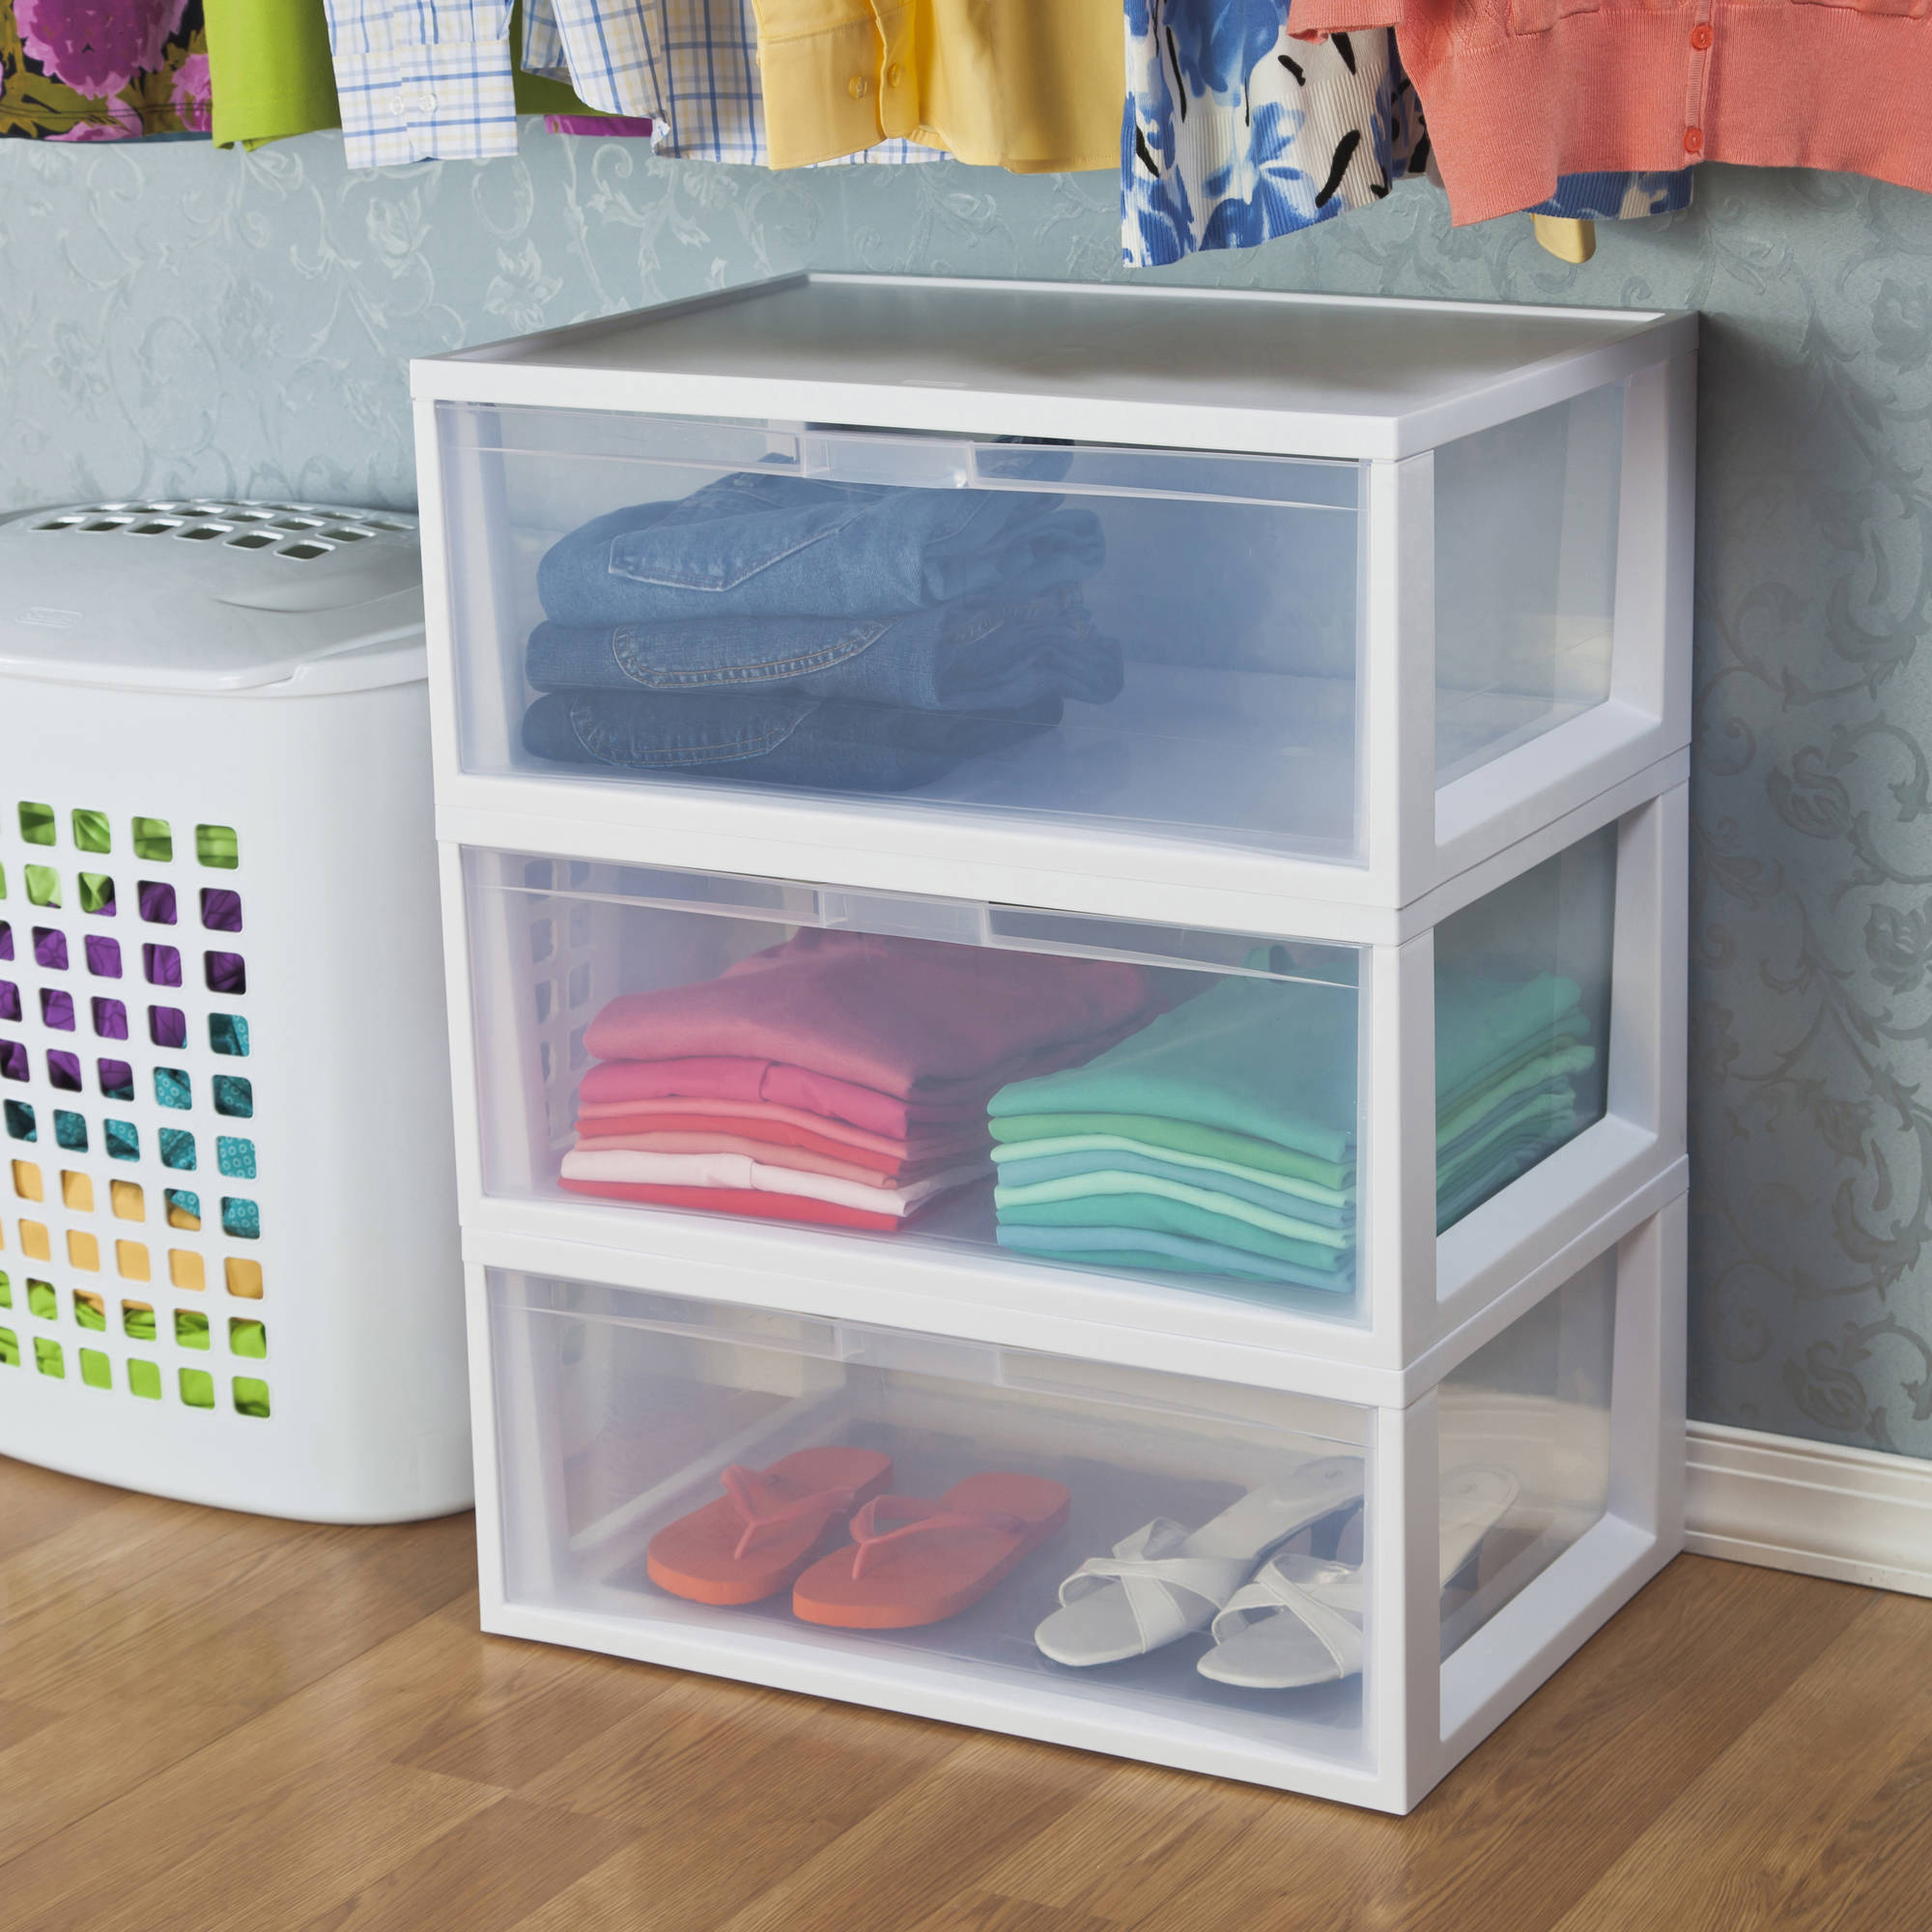 Sterilite Large Tall Modular Drawers- White (Available in Case of 3 or Single Unit)